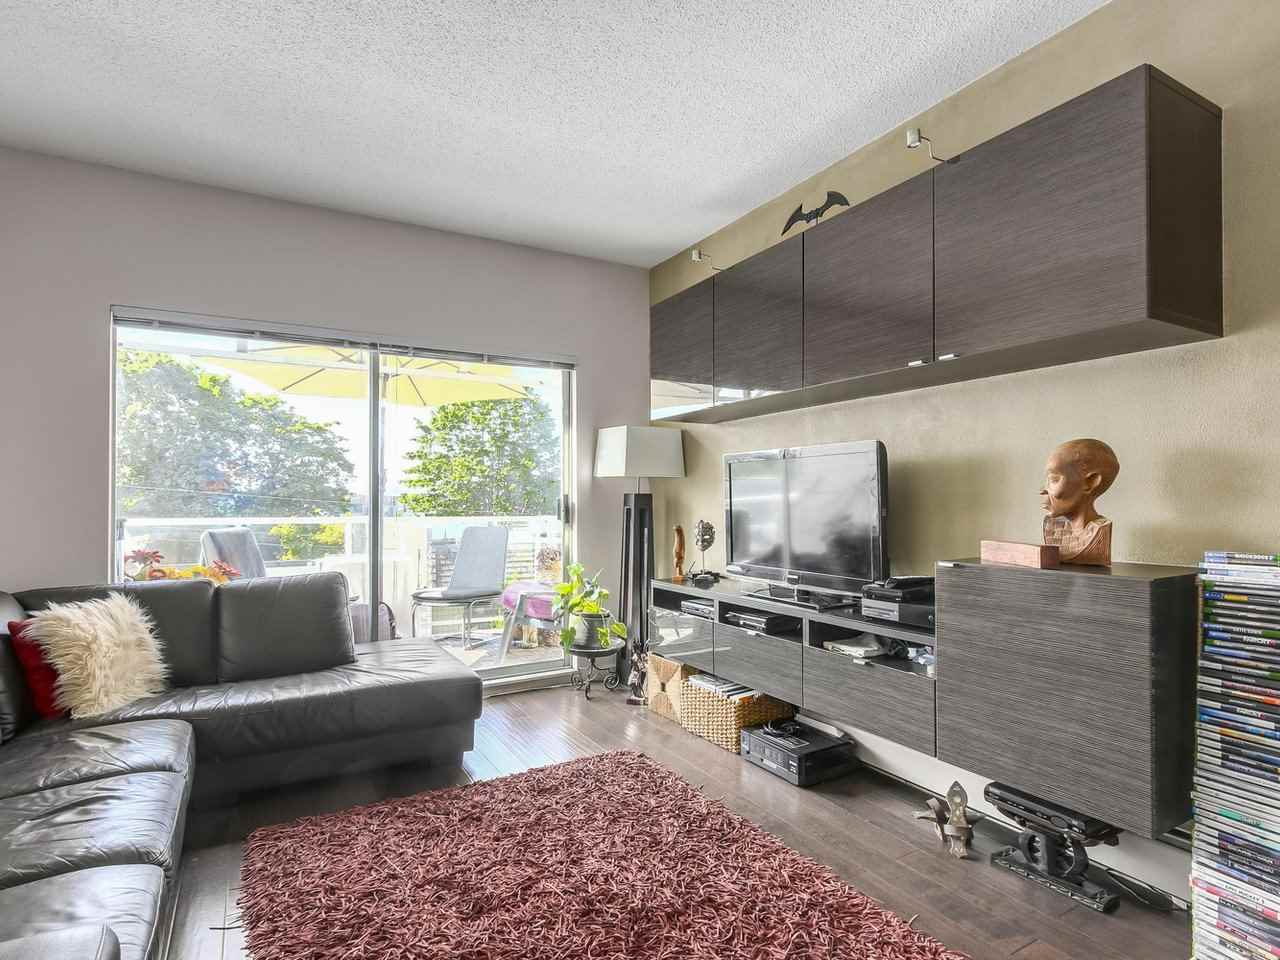 "Photo 6: 304 827 W 16TH Street in North Vancouver: Hamilton Condo for sale in ""CEDARCREST"" : MLS® # R2192474"